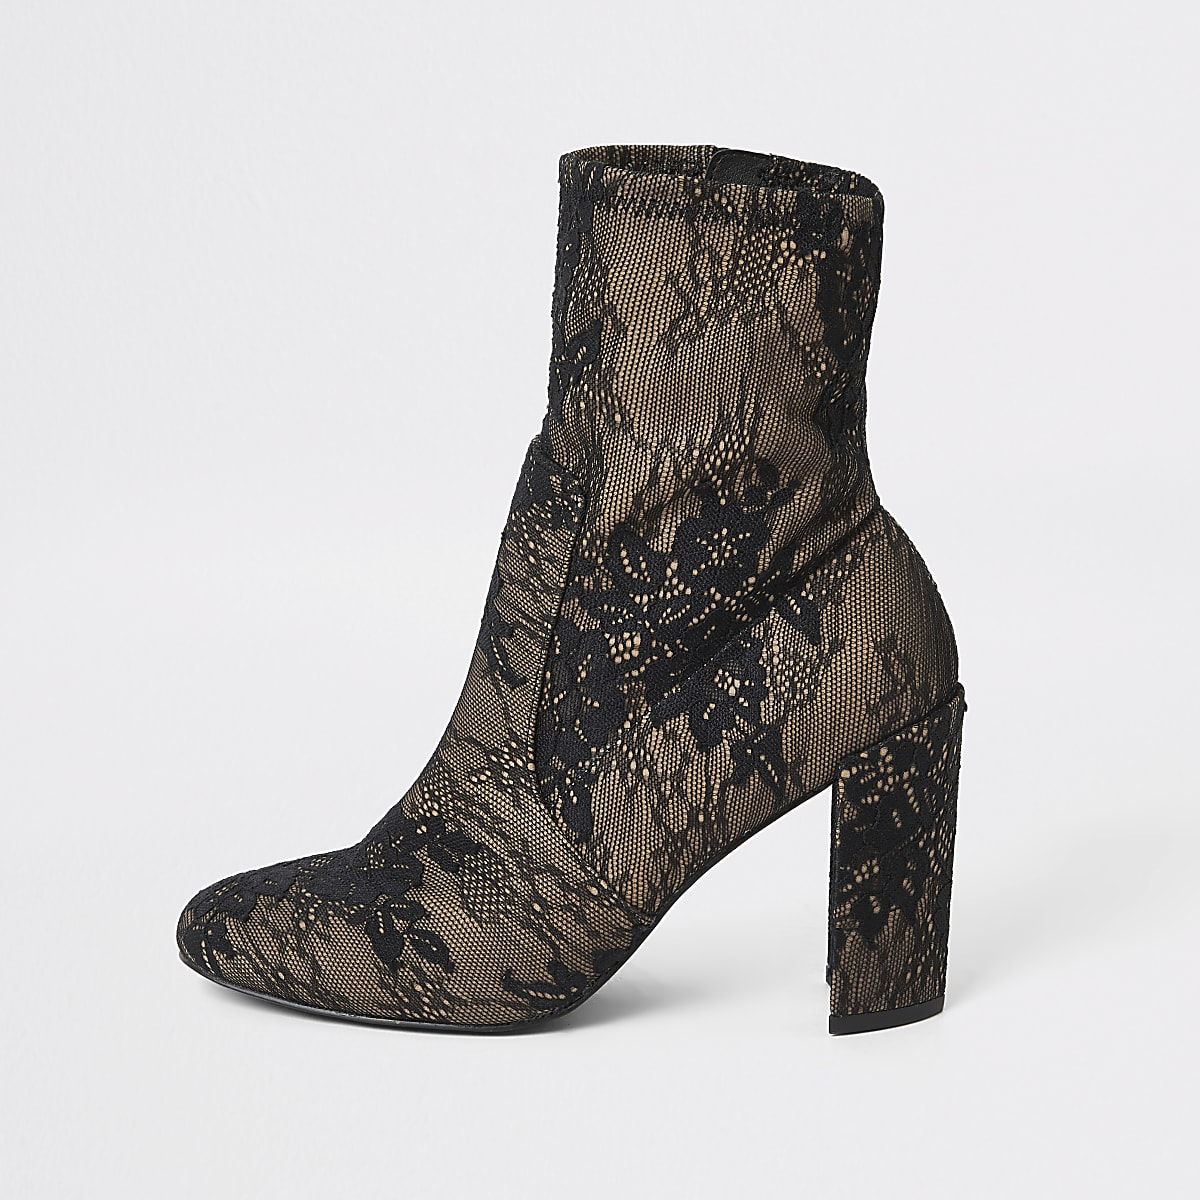 Black lace heeled sock boots